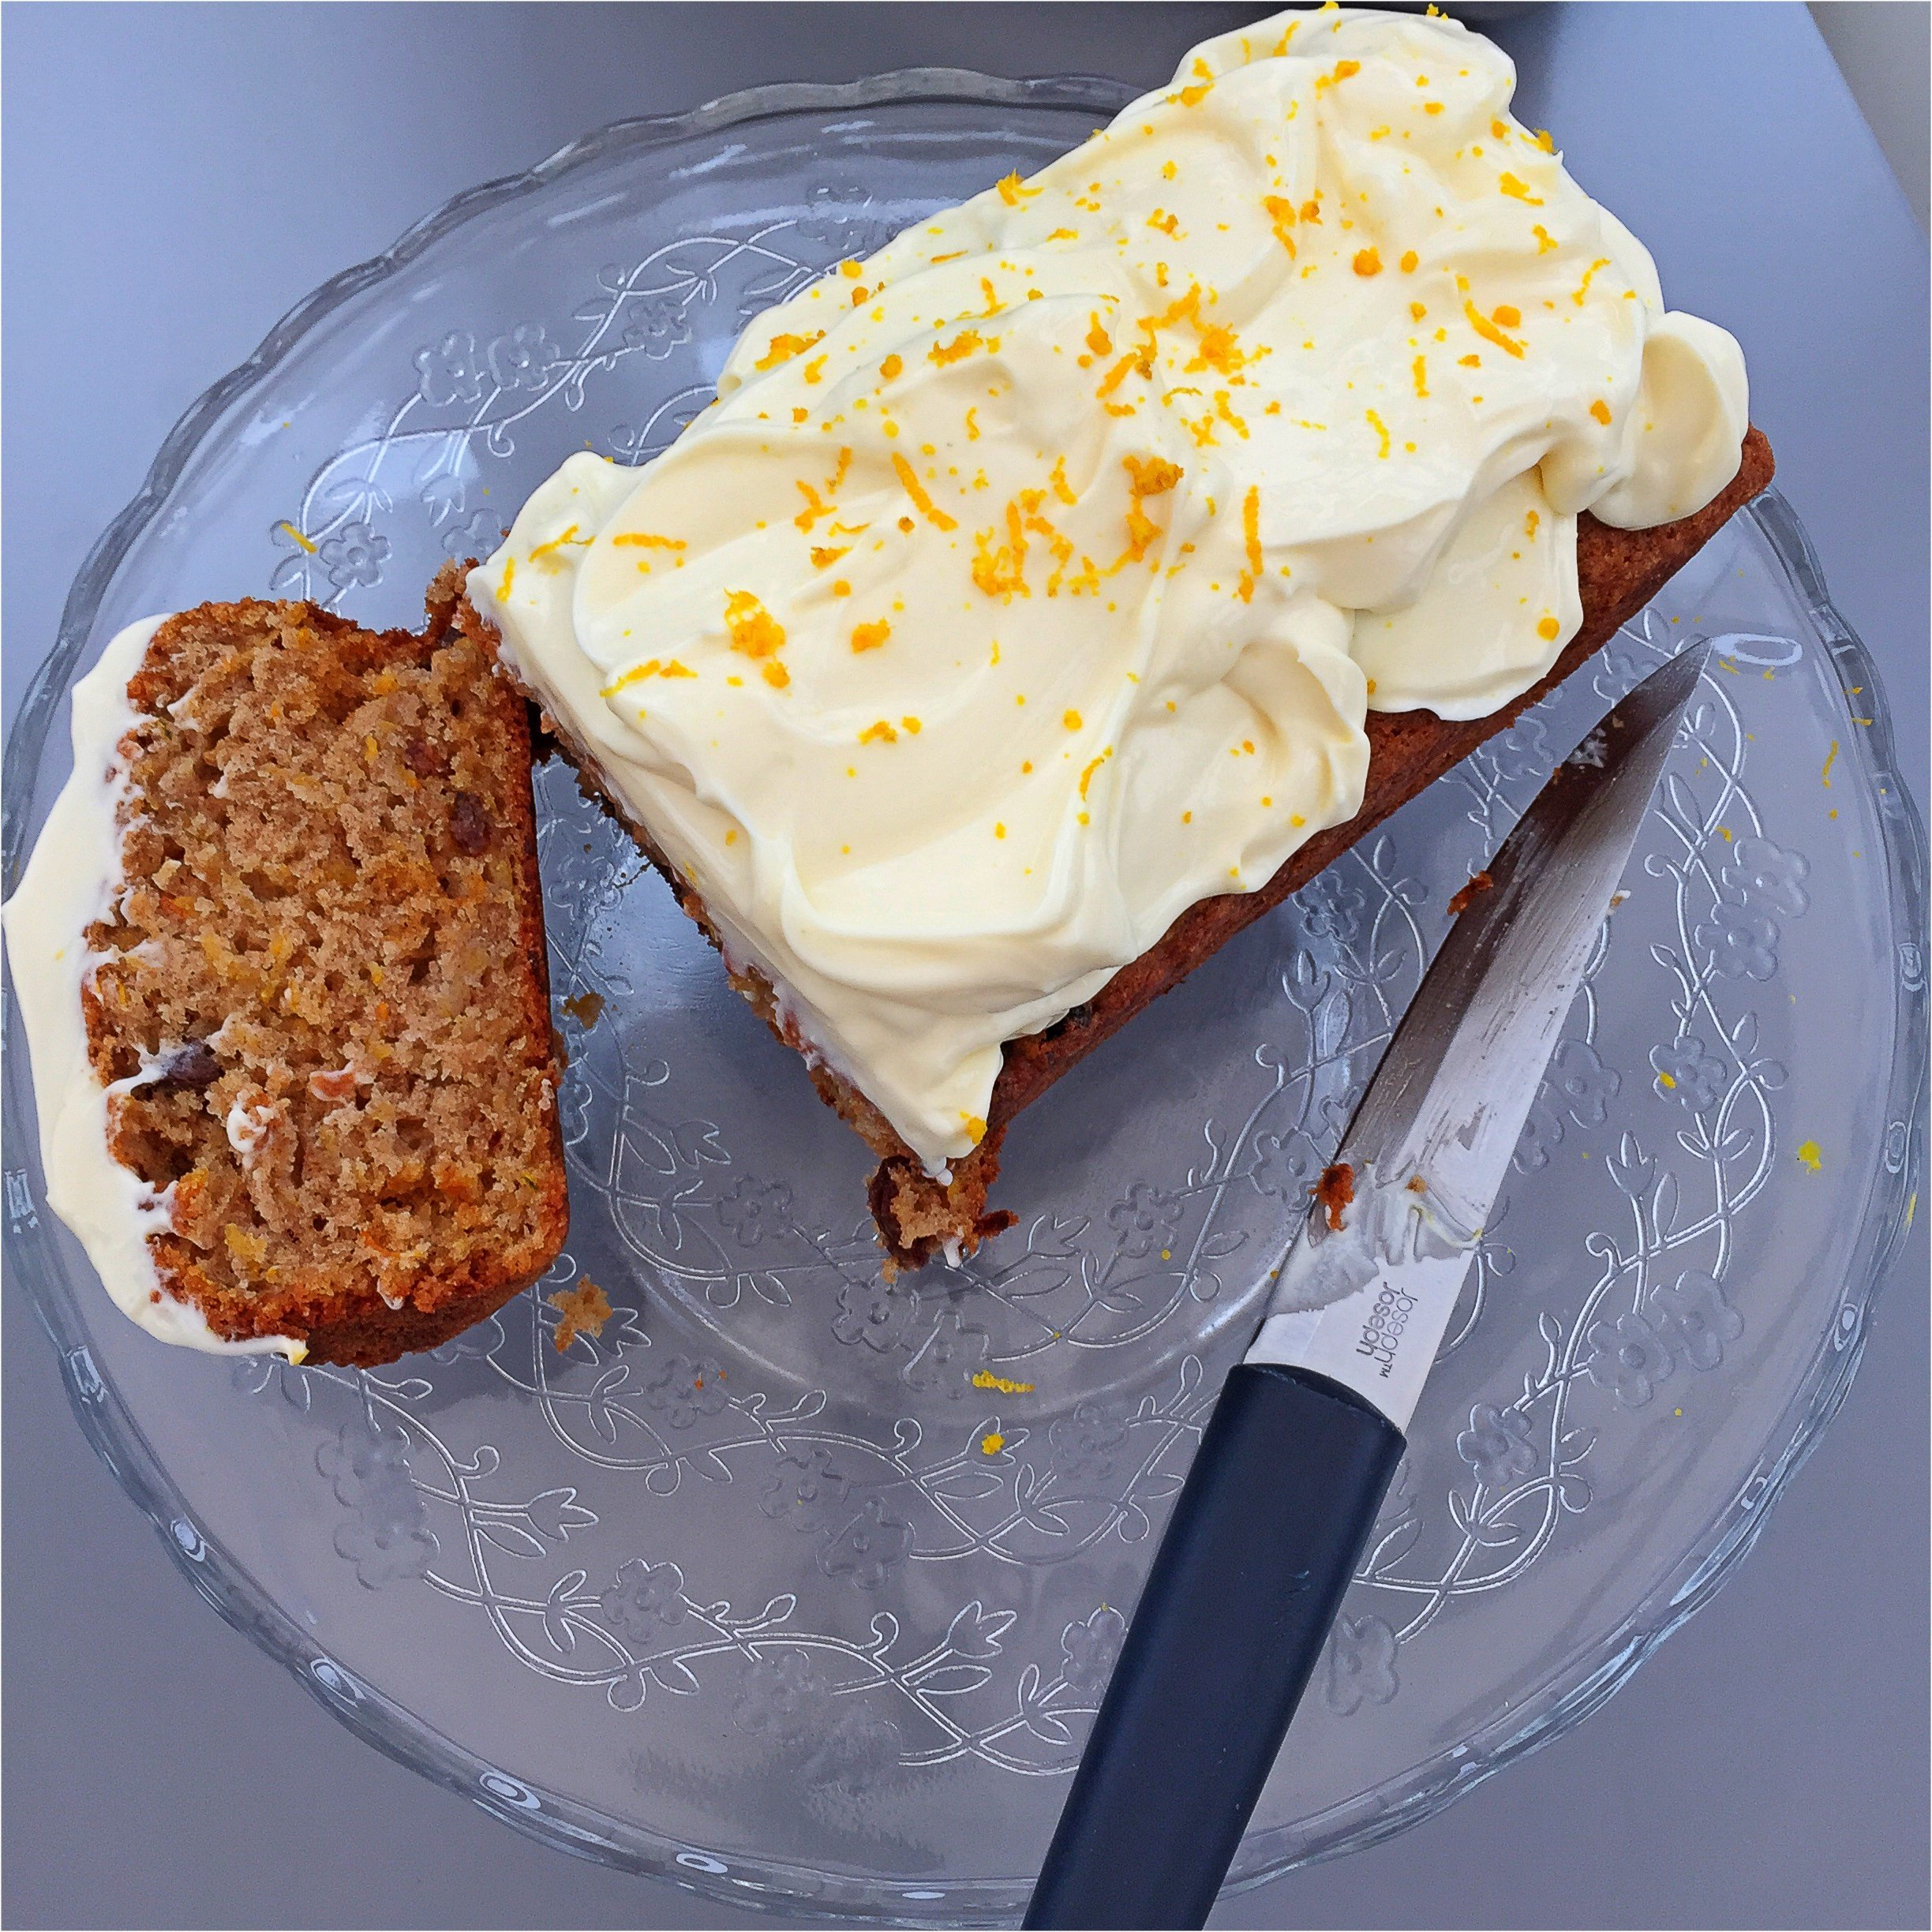 Squash cake with cream cheese frosting